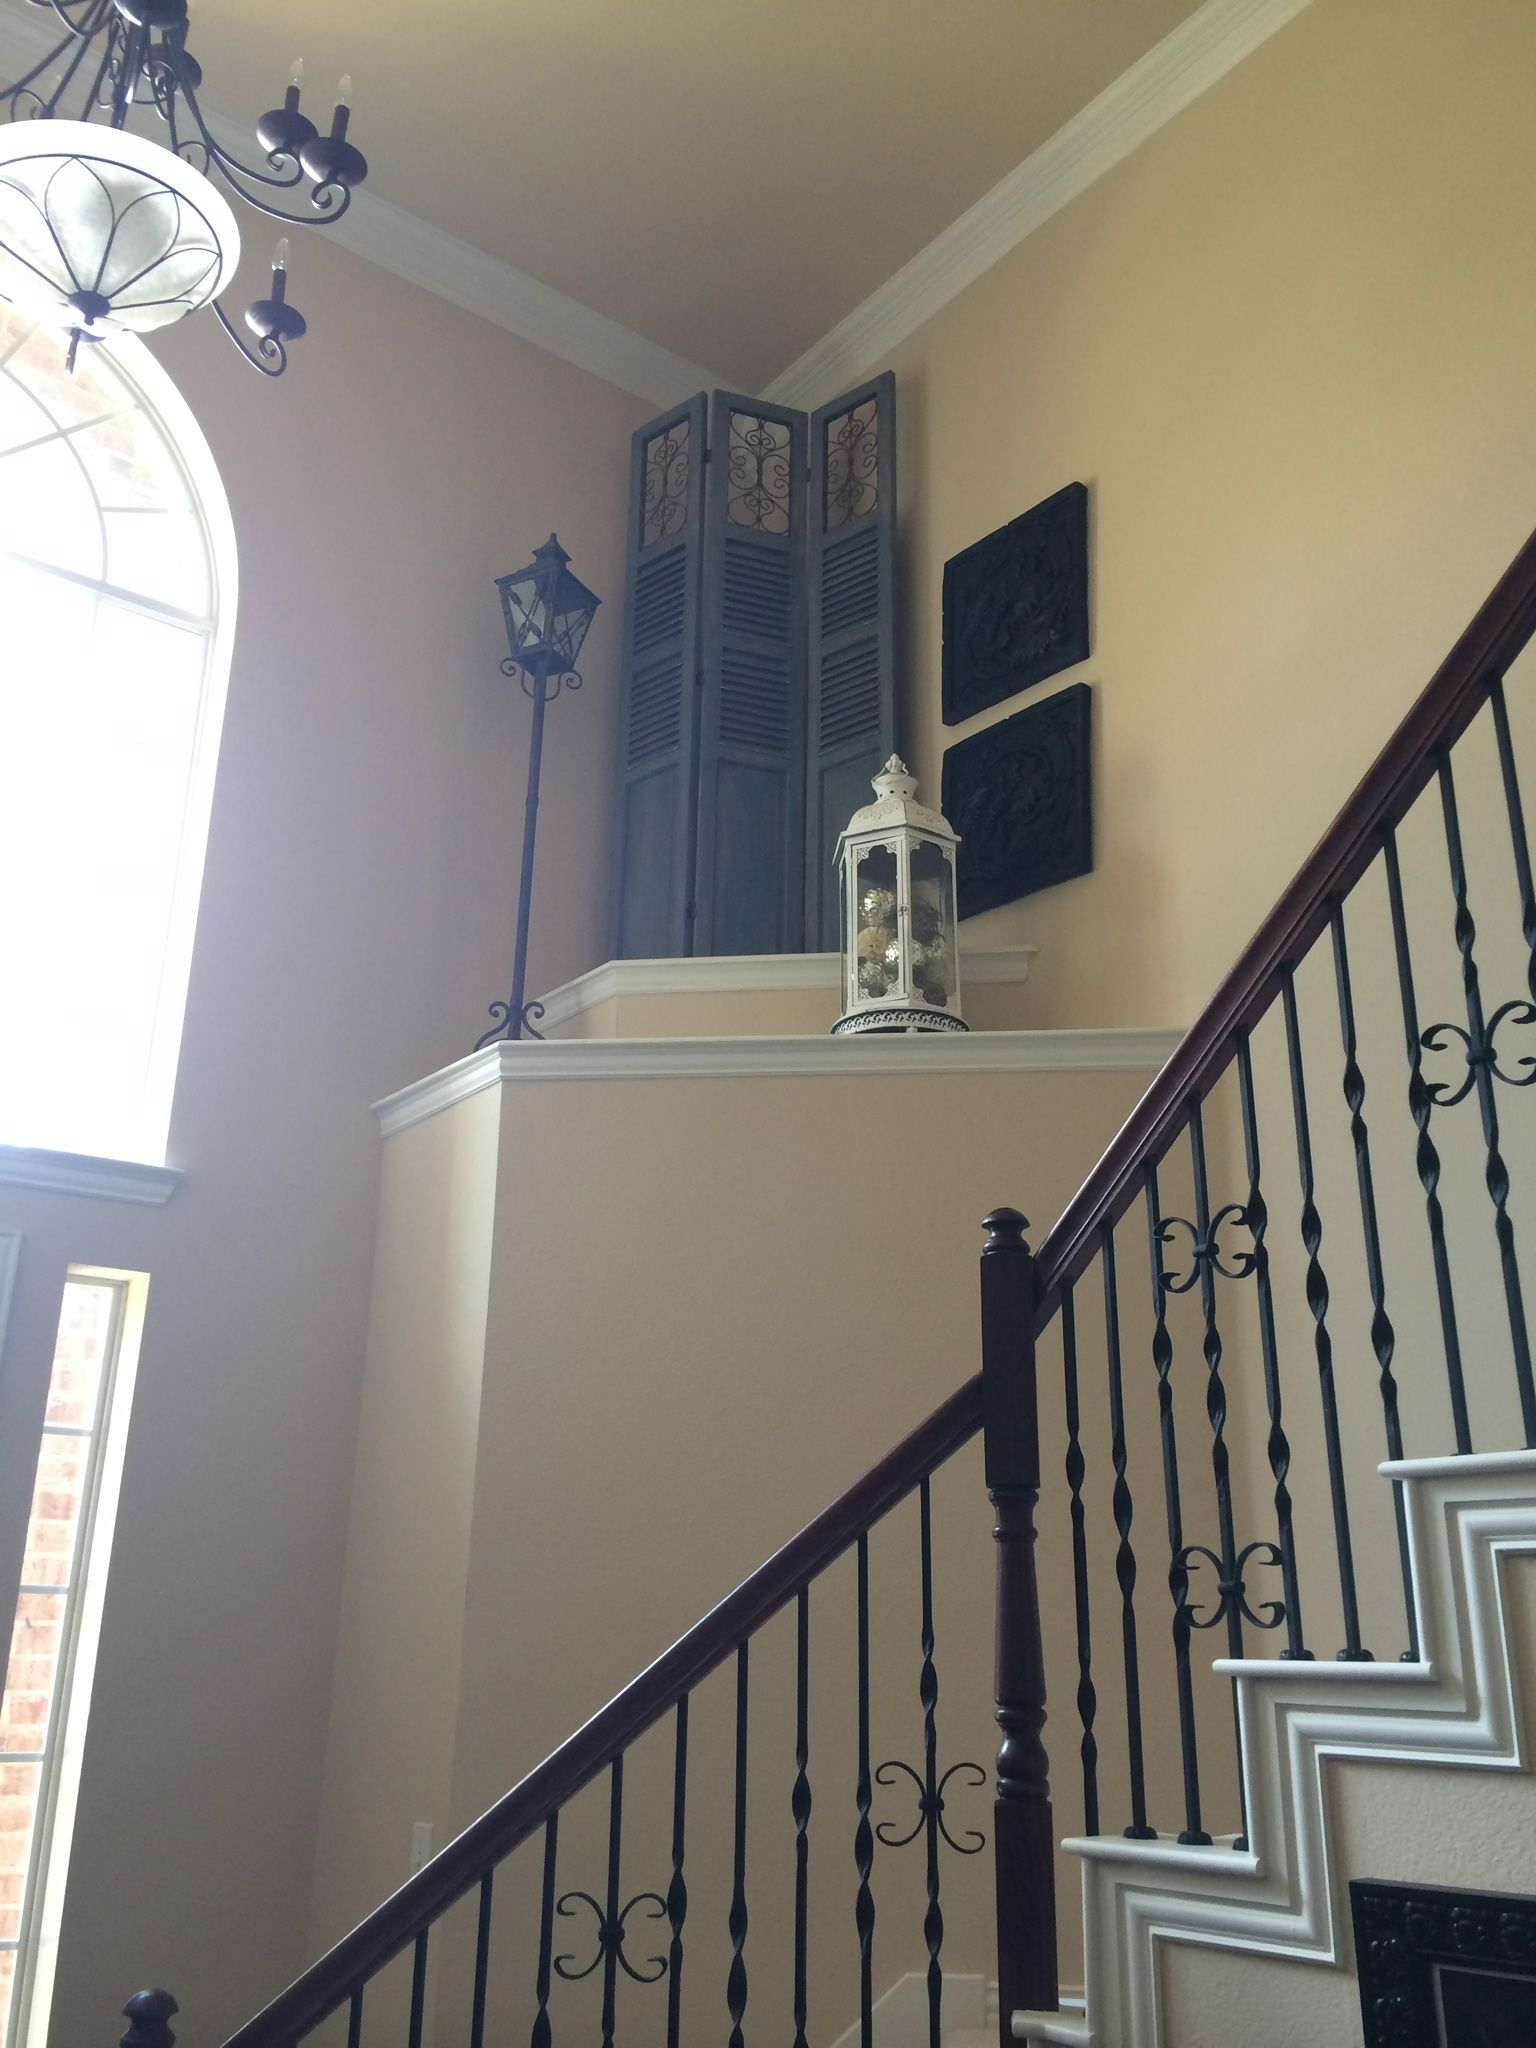 High Foyer Ledge Decorating Ideas Google Search Ledge Decor